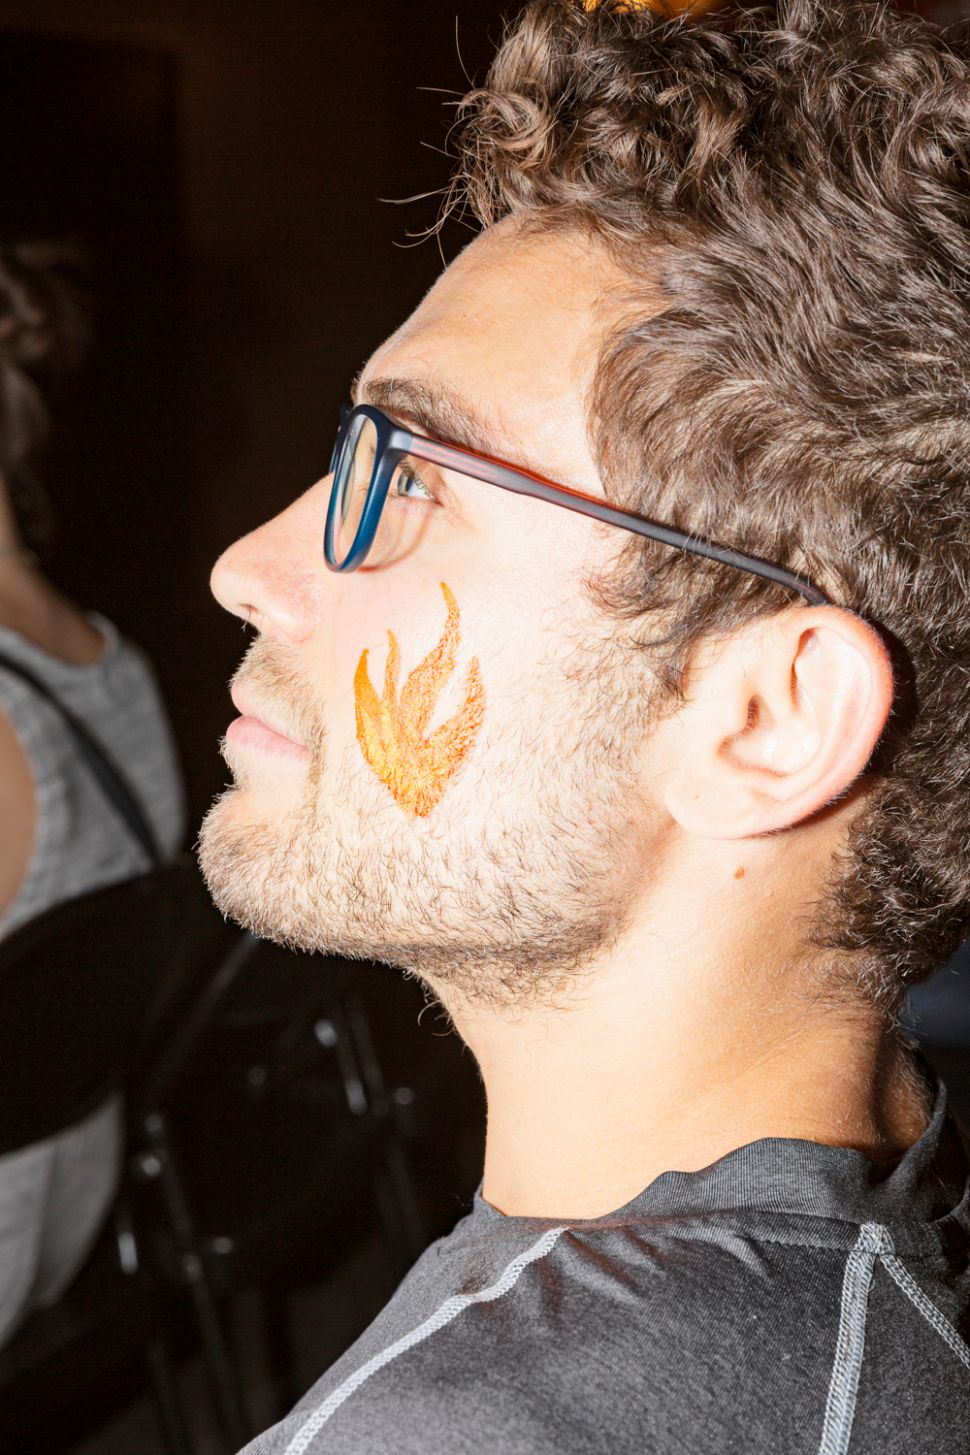 The author with a fire emoji face painting